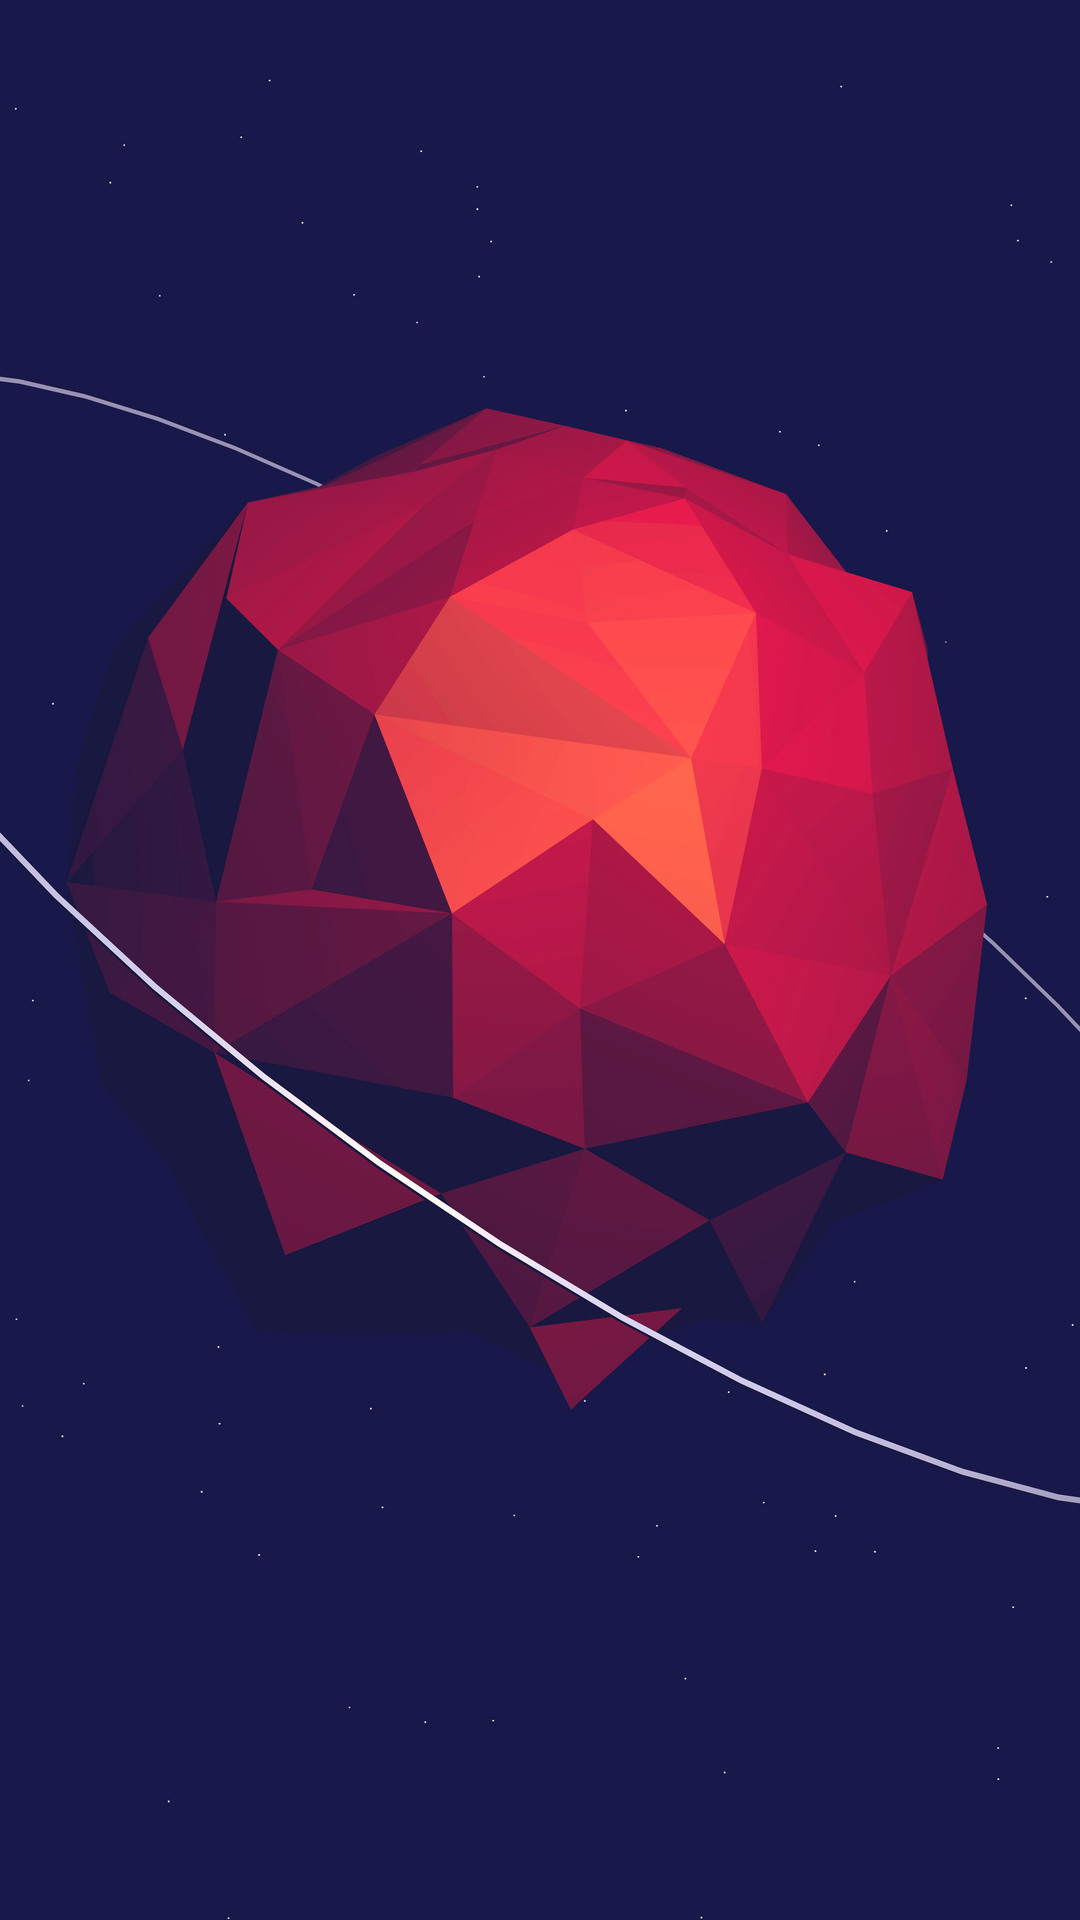 Low Poly Planet Iphone Wallpaper